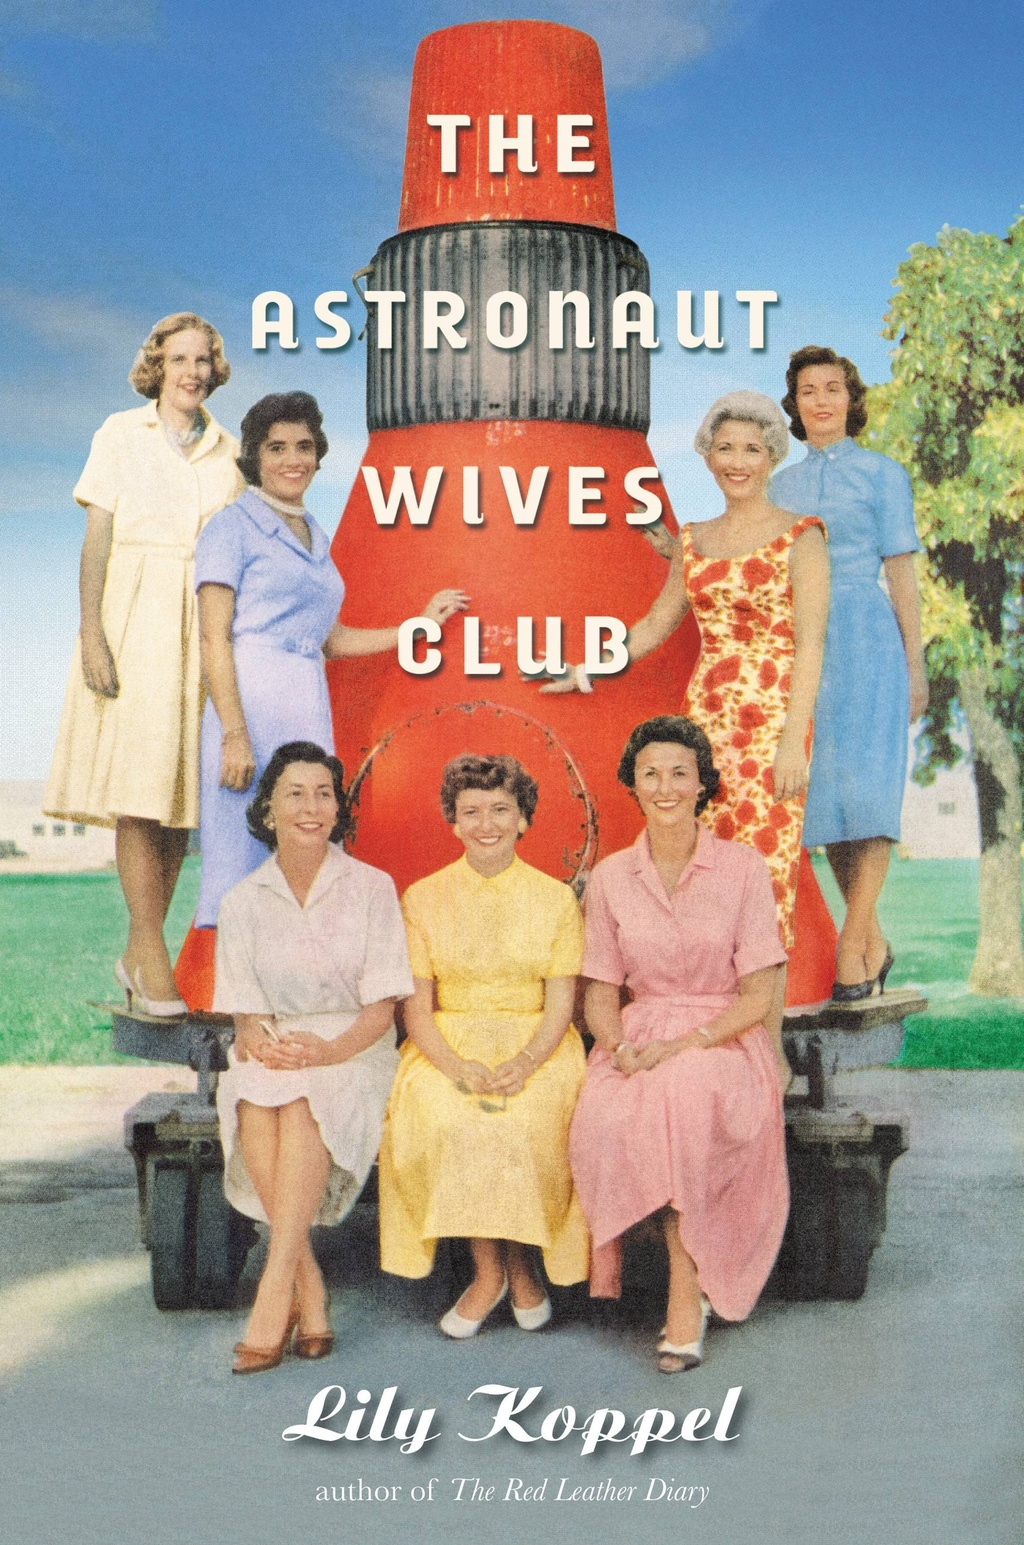 Image result for the astronaut wives club cover